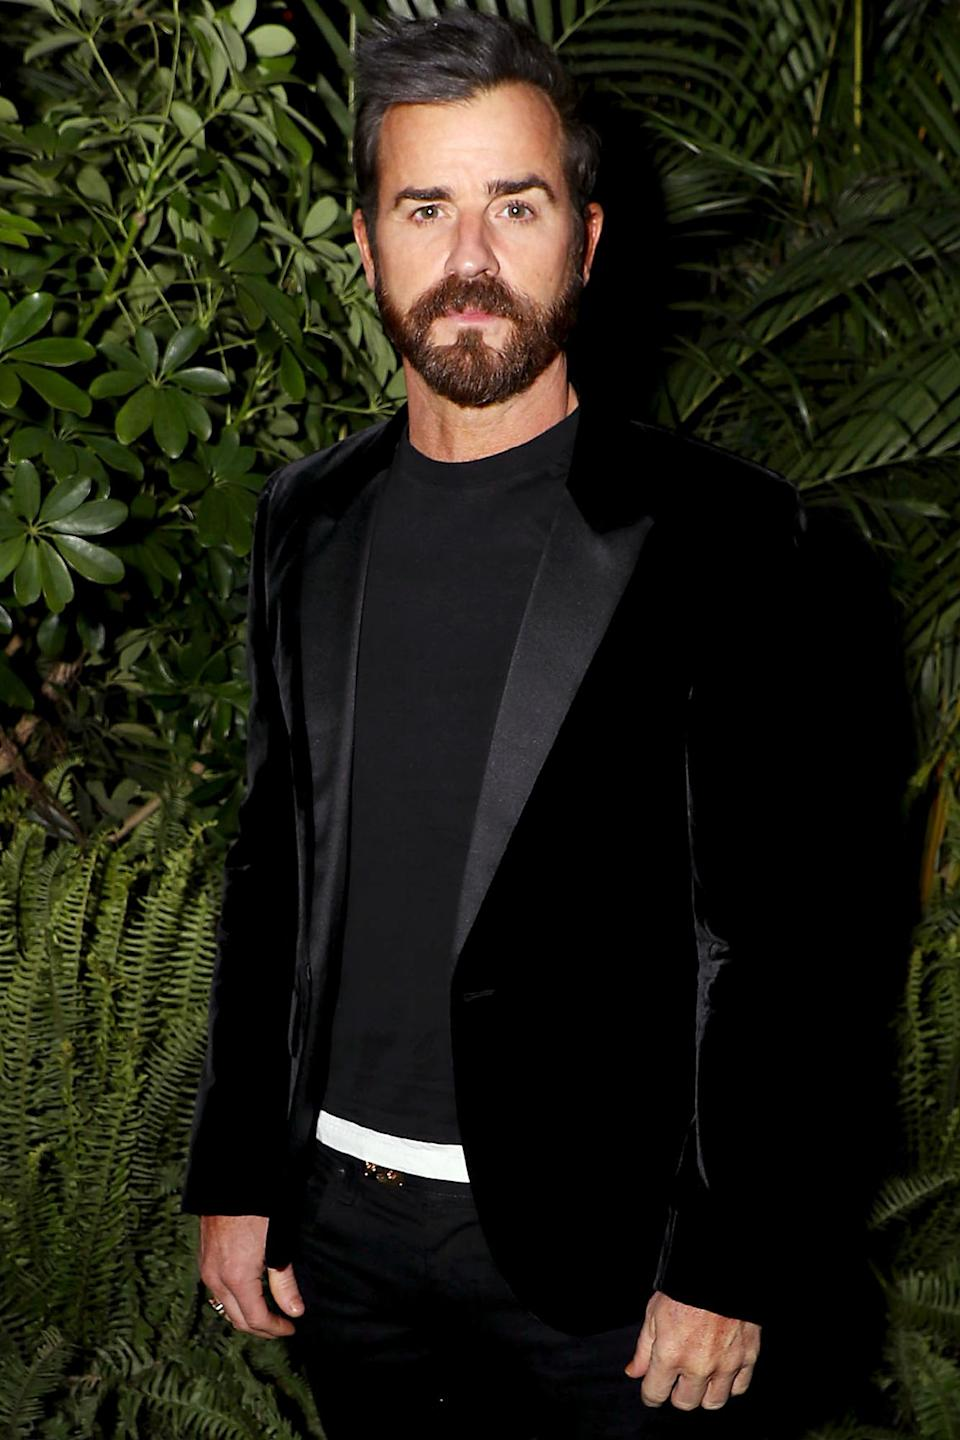 <p> Justin Theroux stepped out for AppleTV's special drive-in screening of his new drama series <em>The Mosquito Coast</em> in New York.</p>